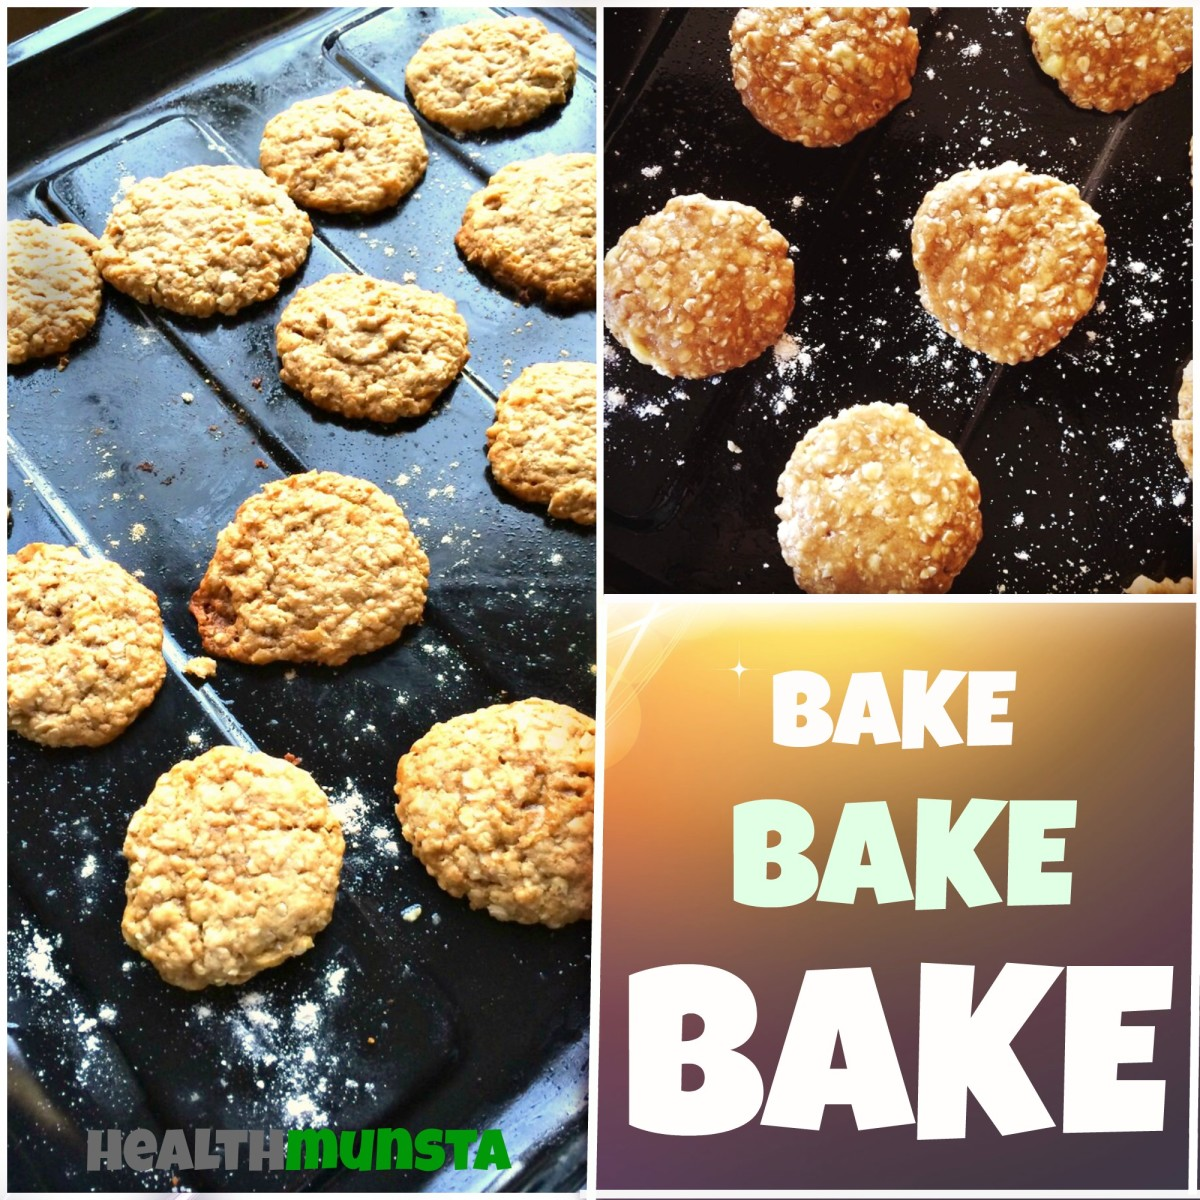 The baked cookies.